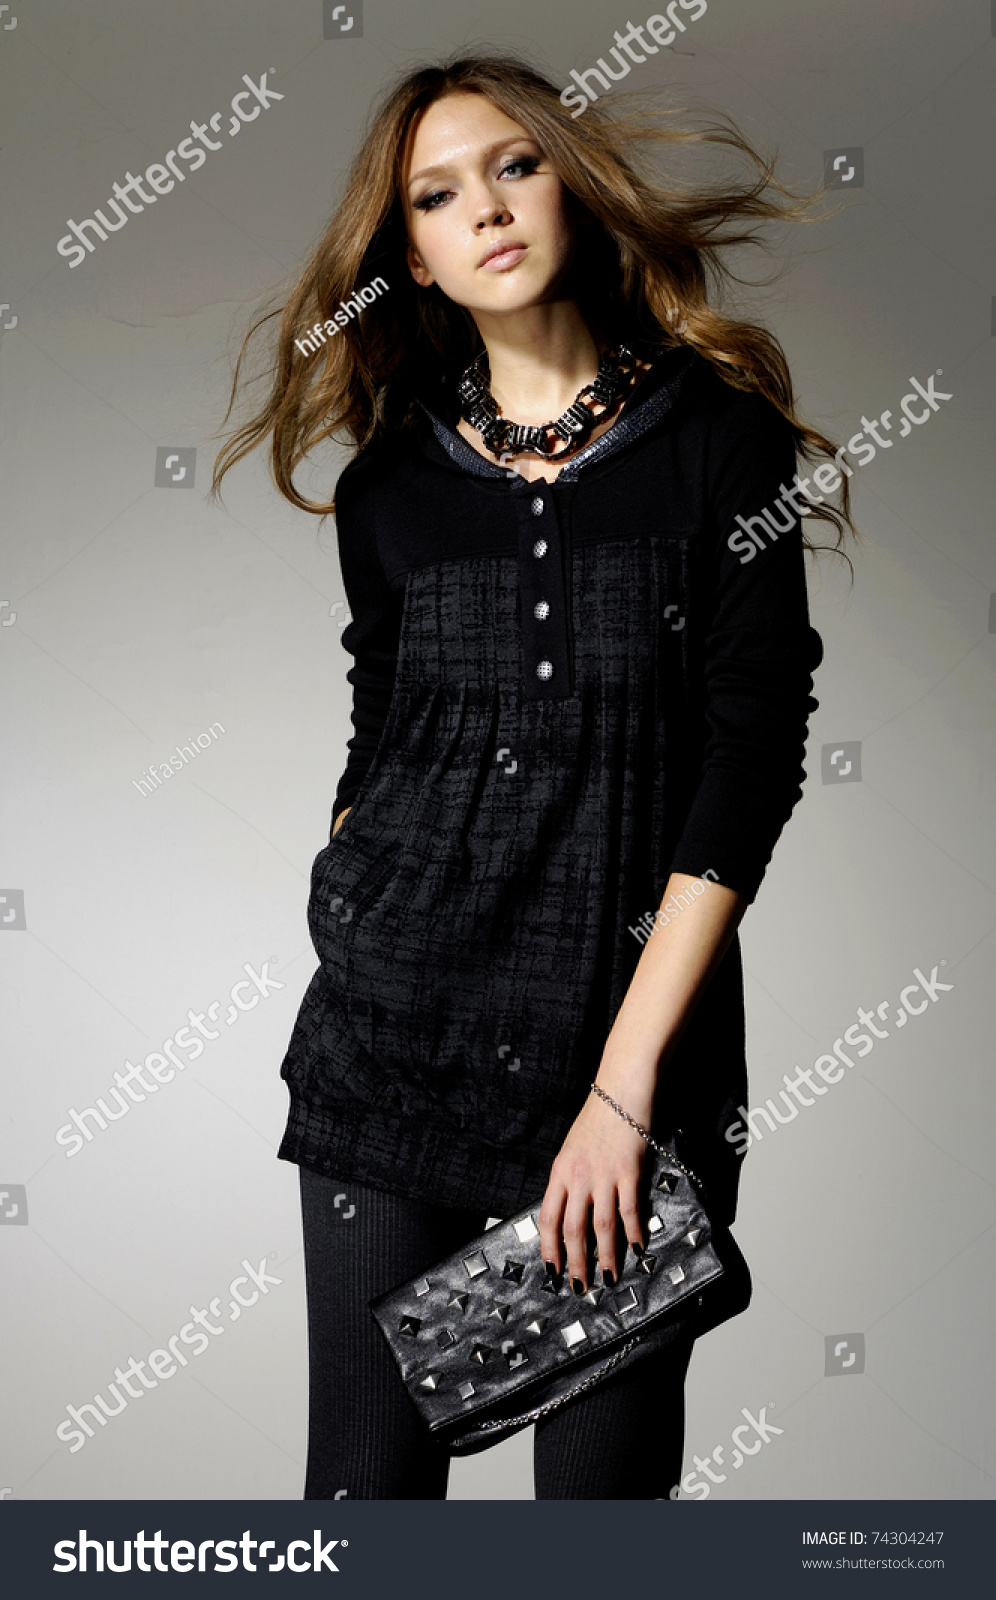 High fashion model with bag posing stock photo 74304247 shutterstock